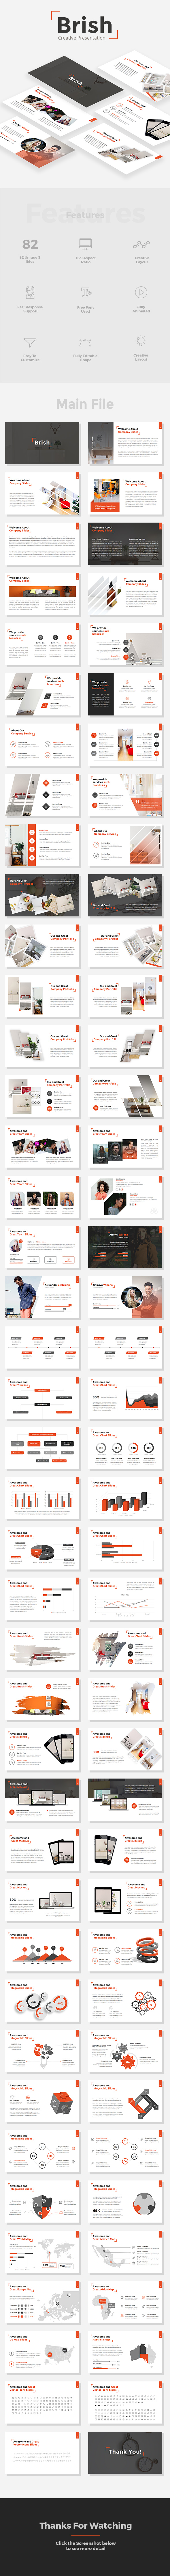 Brish - Creative Powerpoint Template - Creative PowerPoint Templates